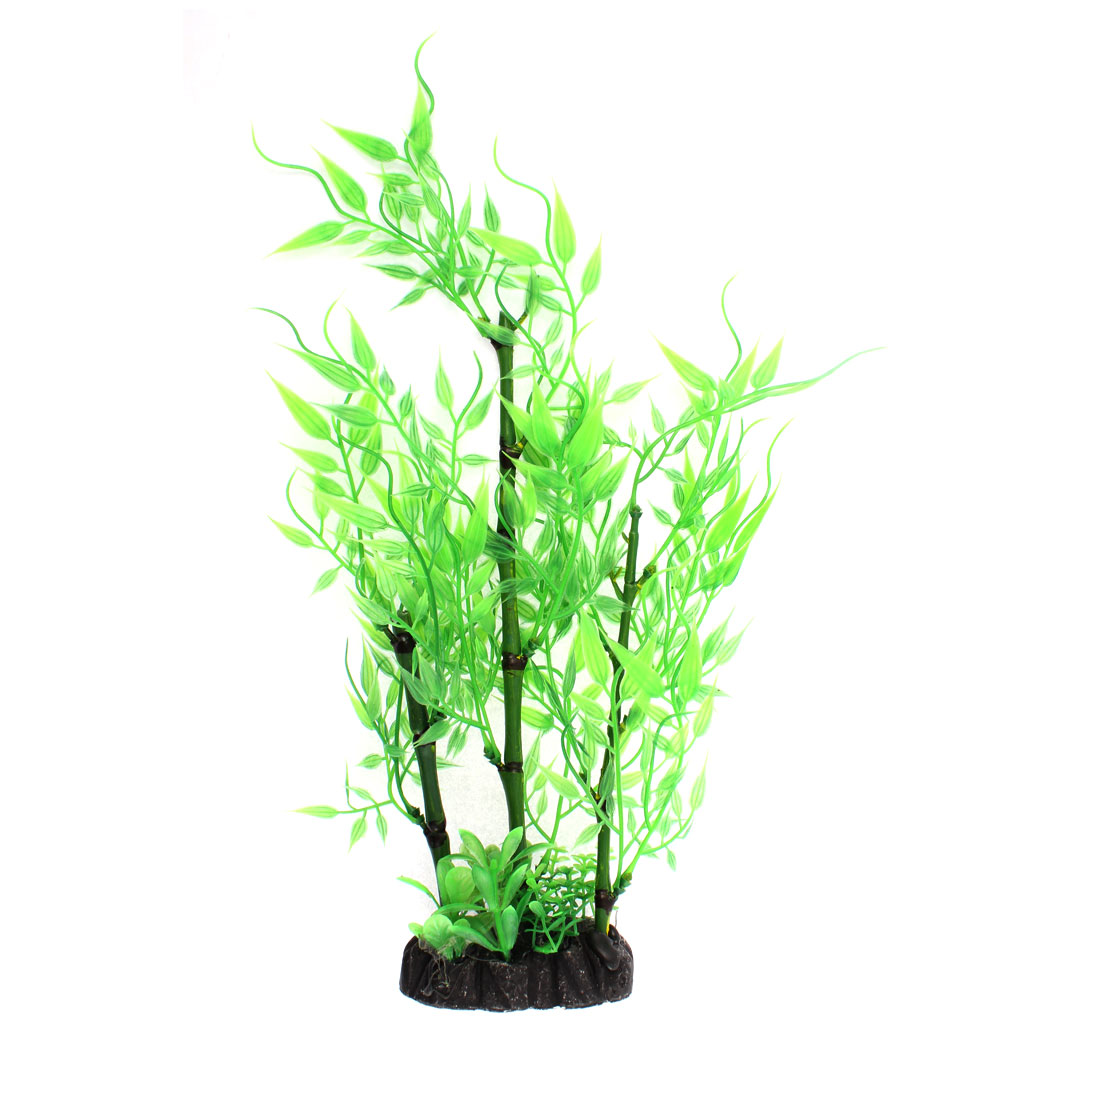 Aquarium Plastic Manmade Water Bamboo Plant Grass Green 28cm High